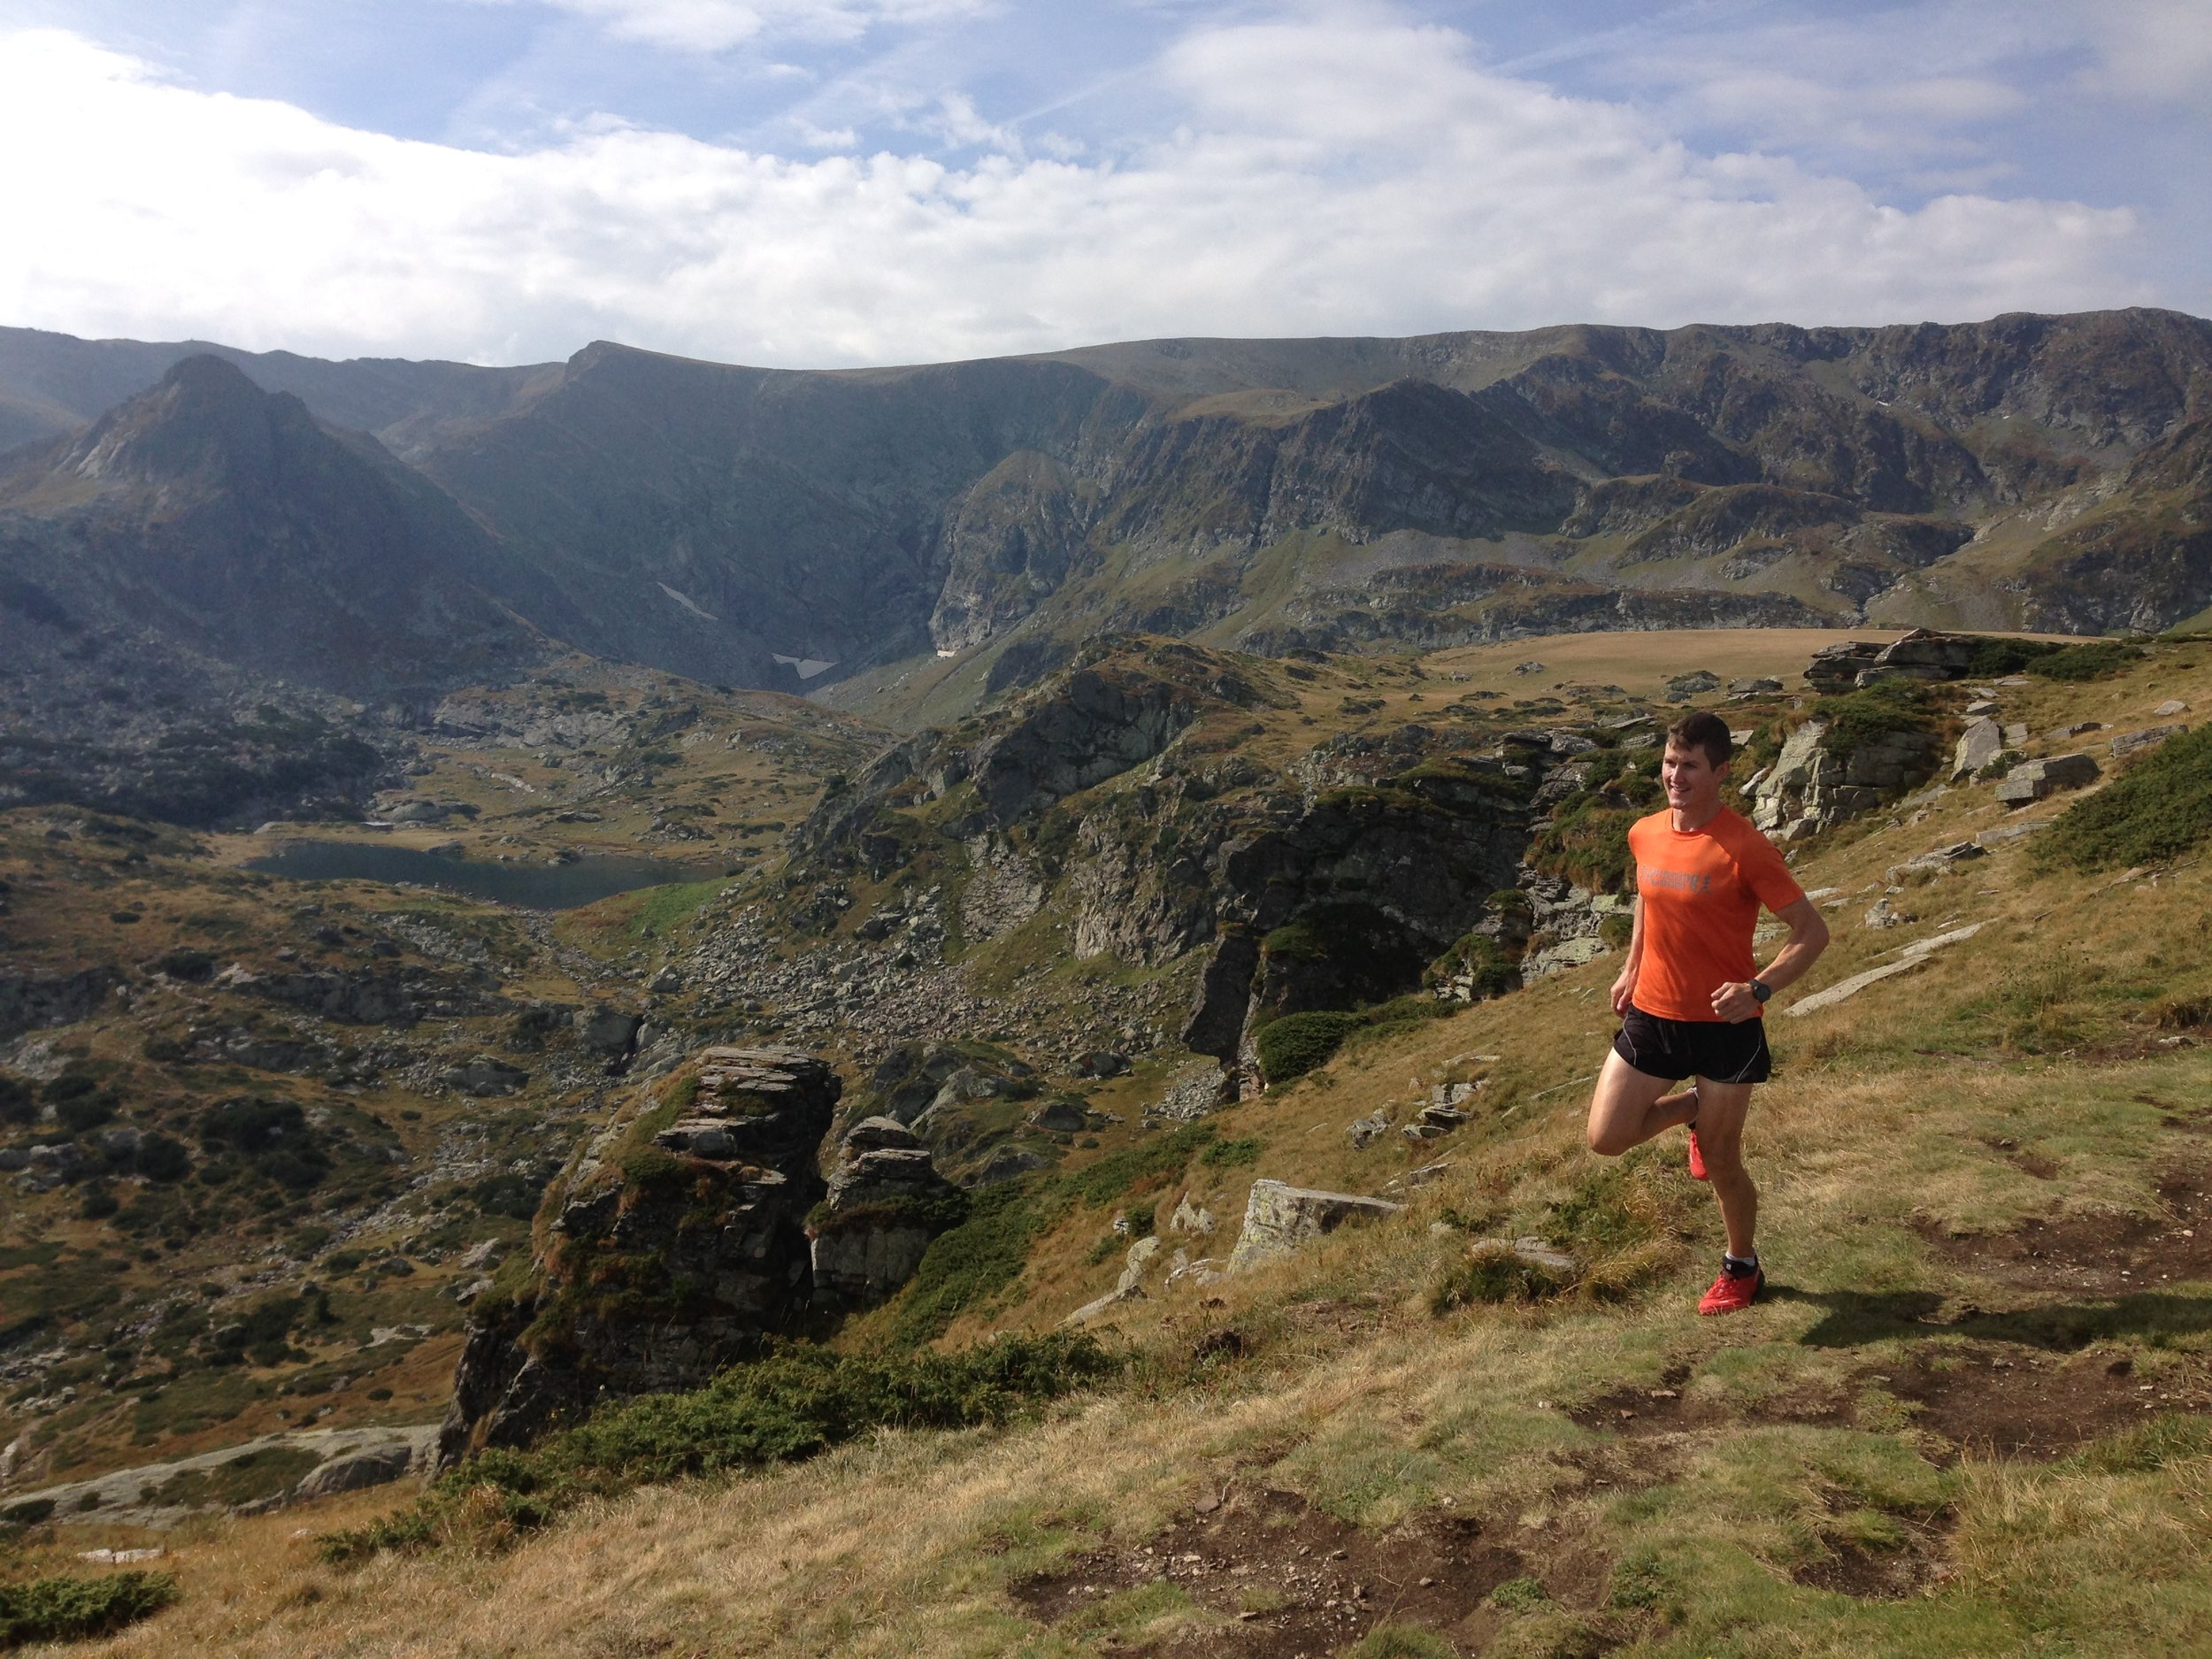 Running in the Rila Mountains (PC: Dougal from NZ)